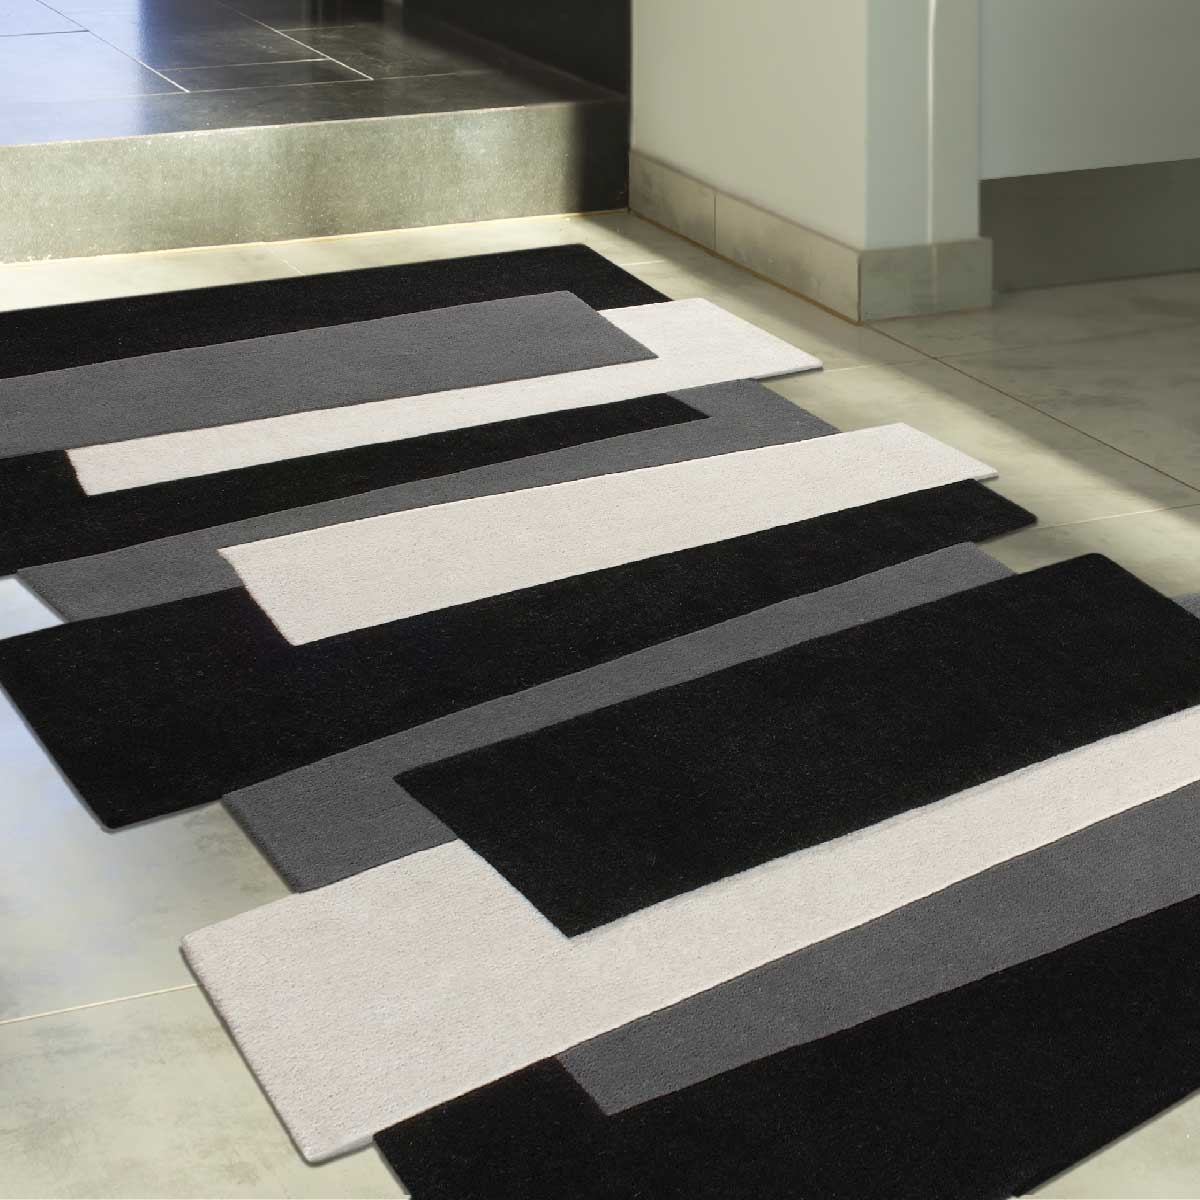 tapis salle de bain original with tapis salle de bain original tapis de bain coton uni. Black Bedroom Furniture Sets. Home Design Ideas